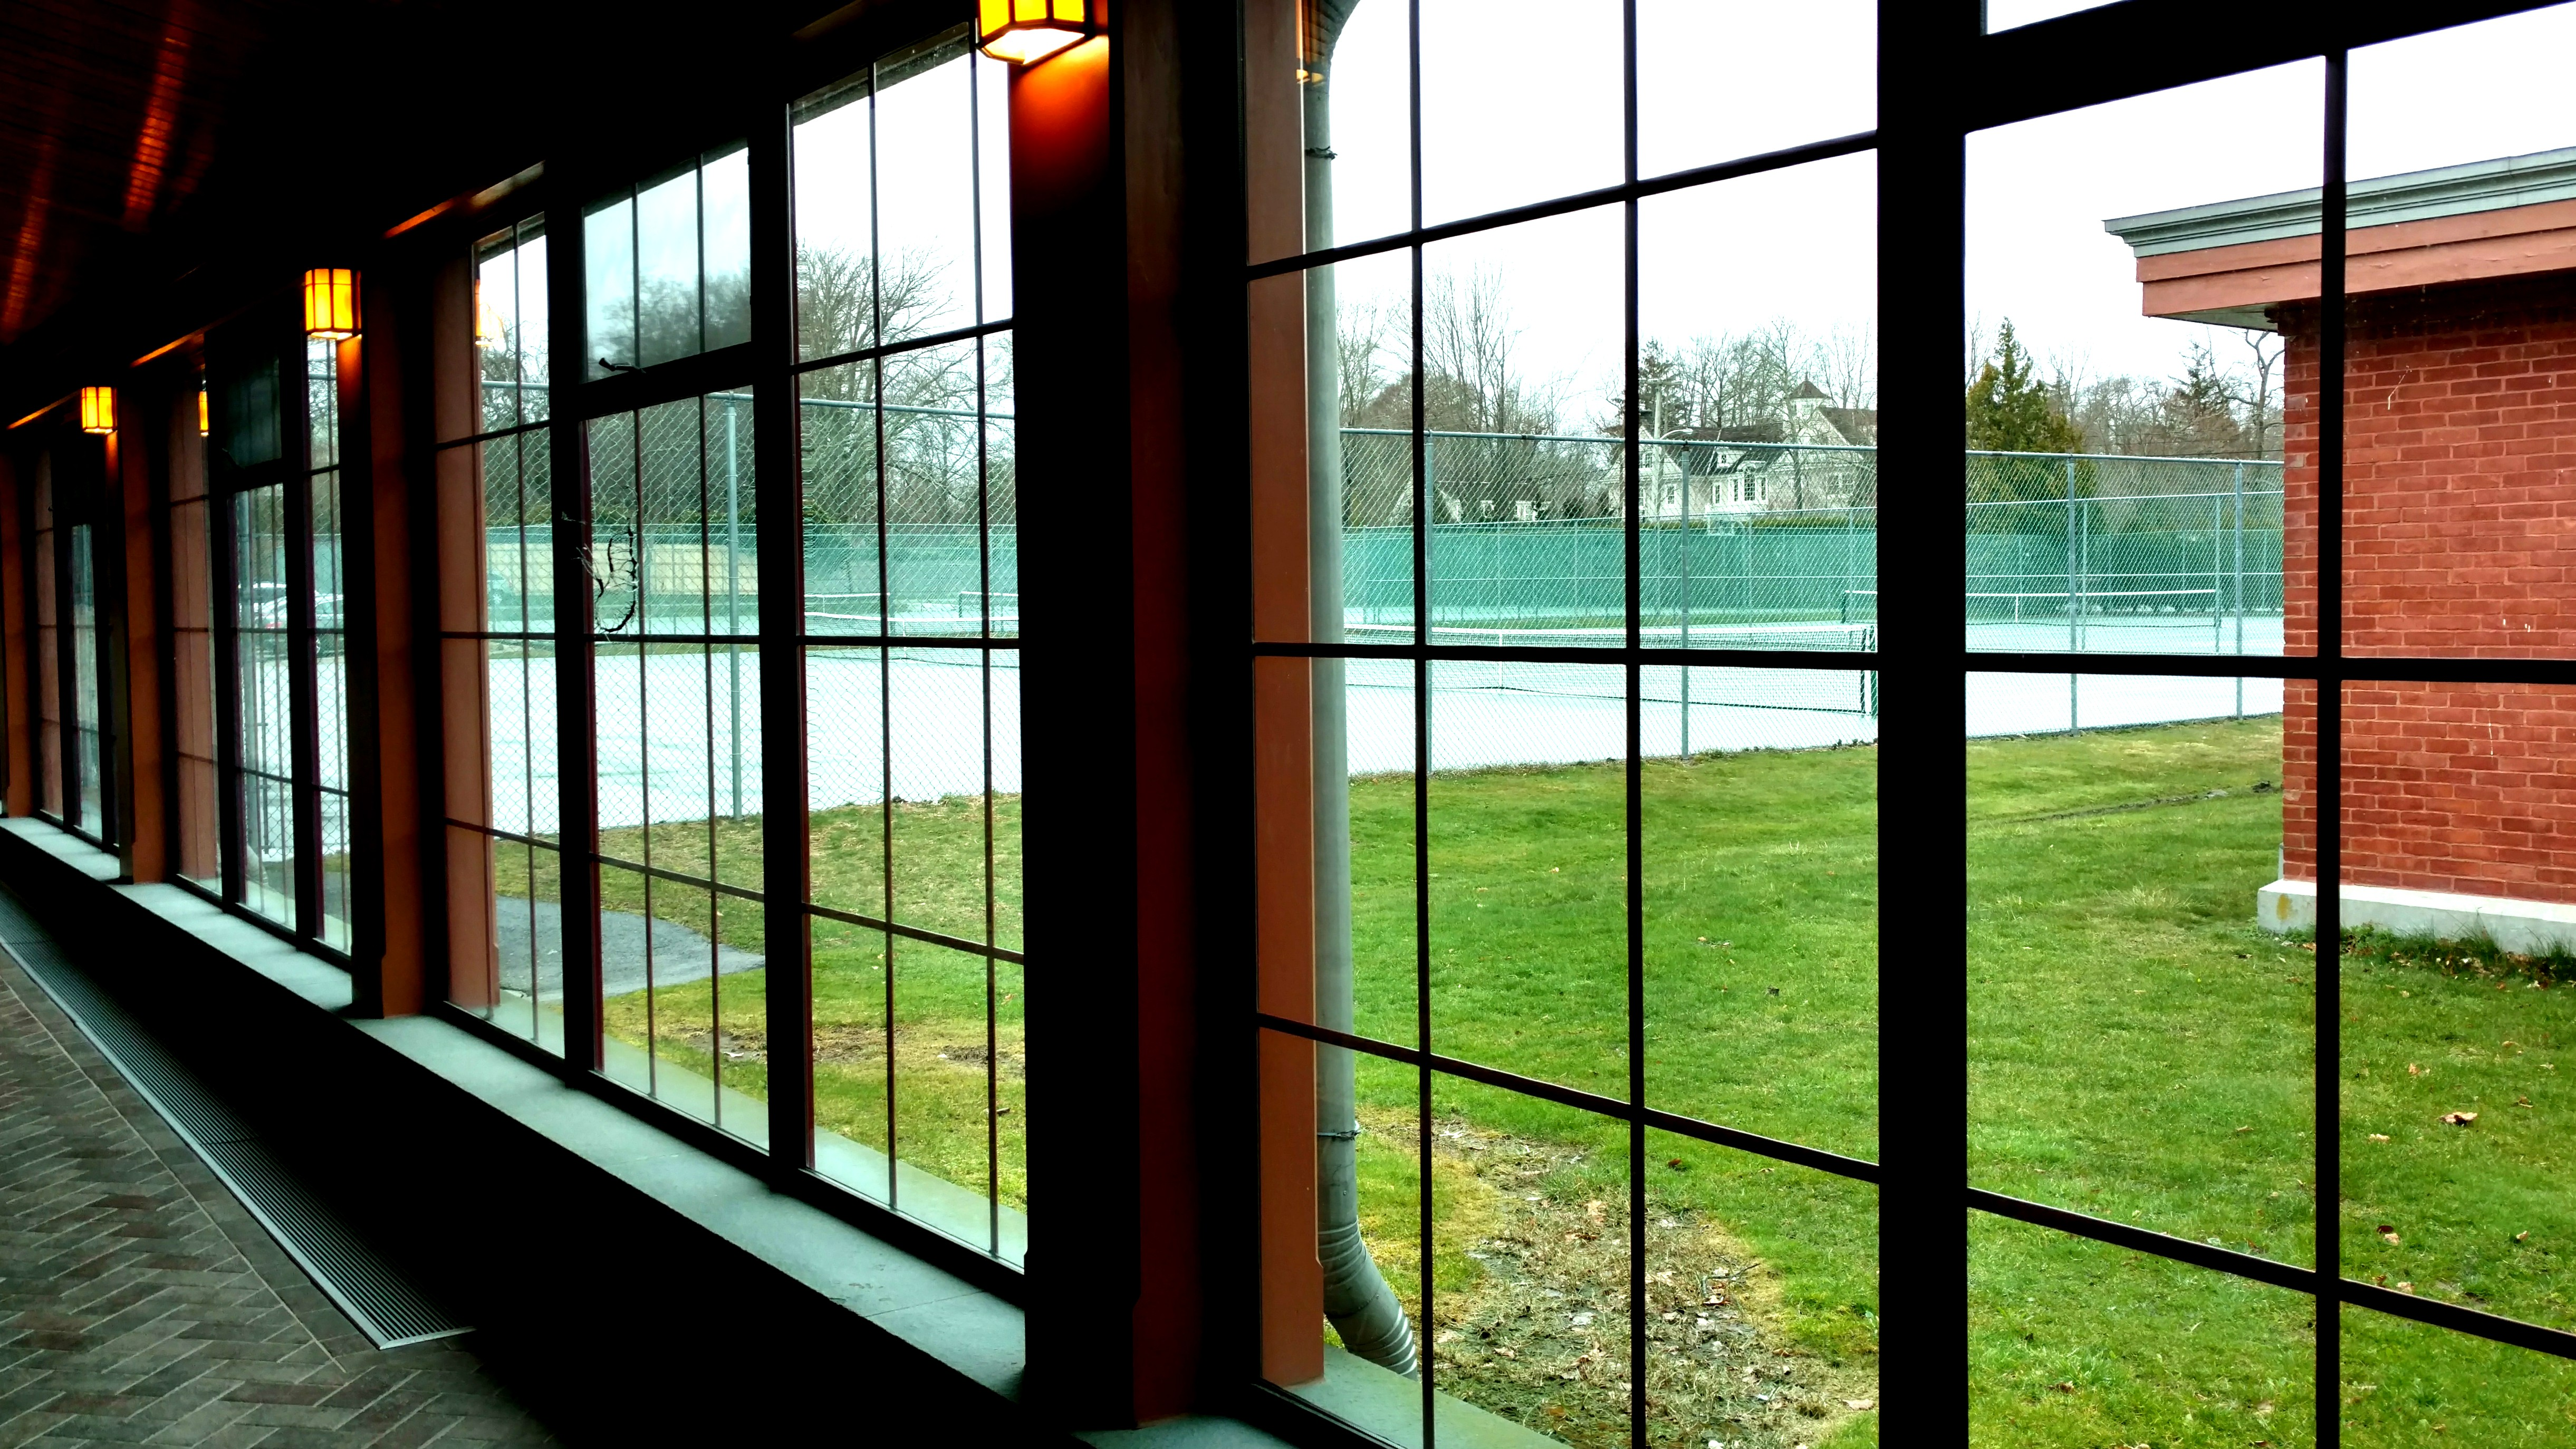 New windows looking out into the tennis courts. This serves as the connector between the Wetmore and Ochre Court structures. Photo taken by Ellen Tuttle.